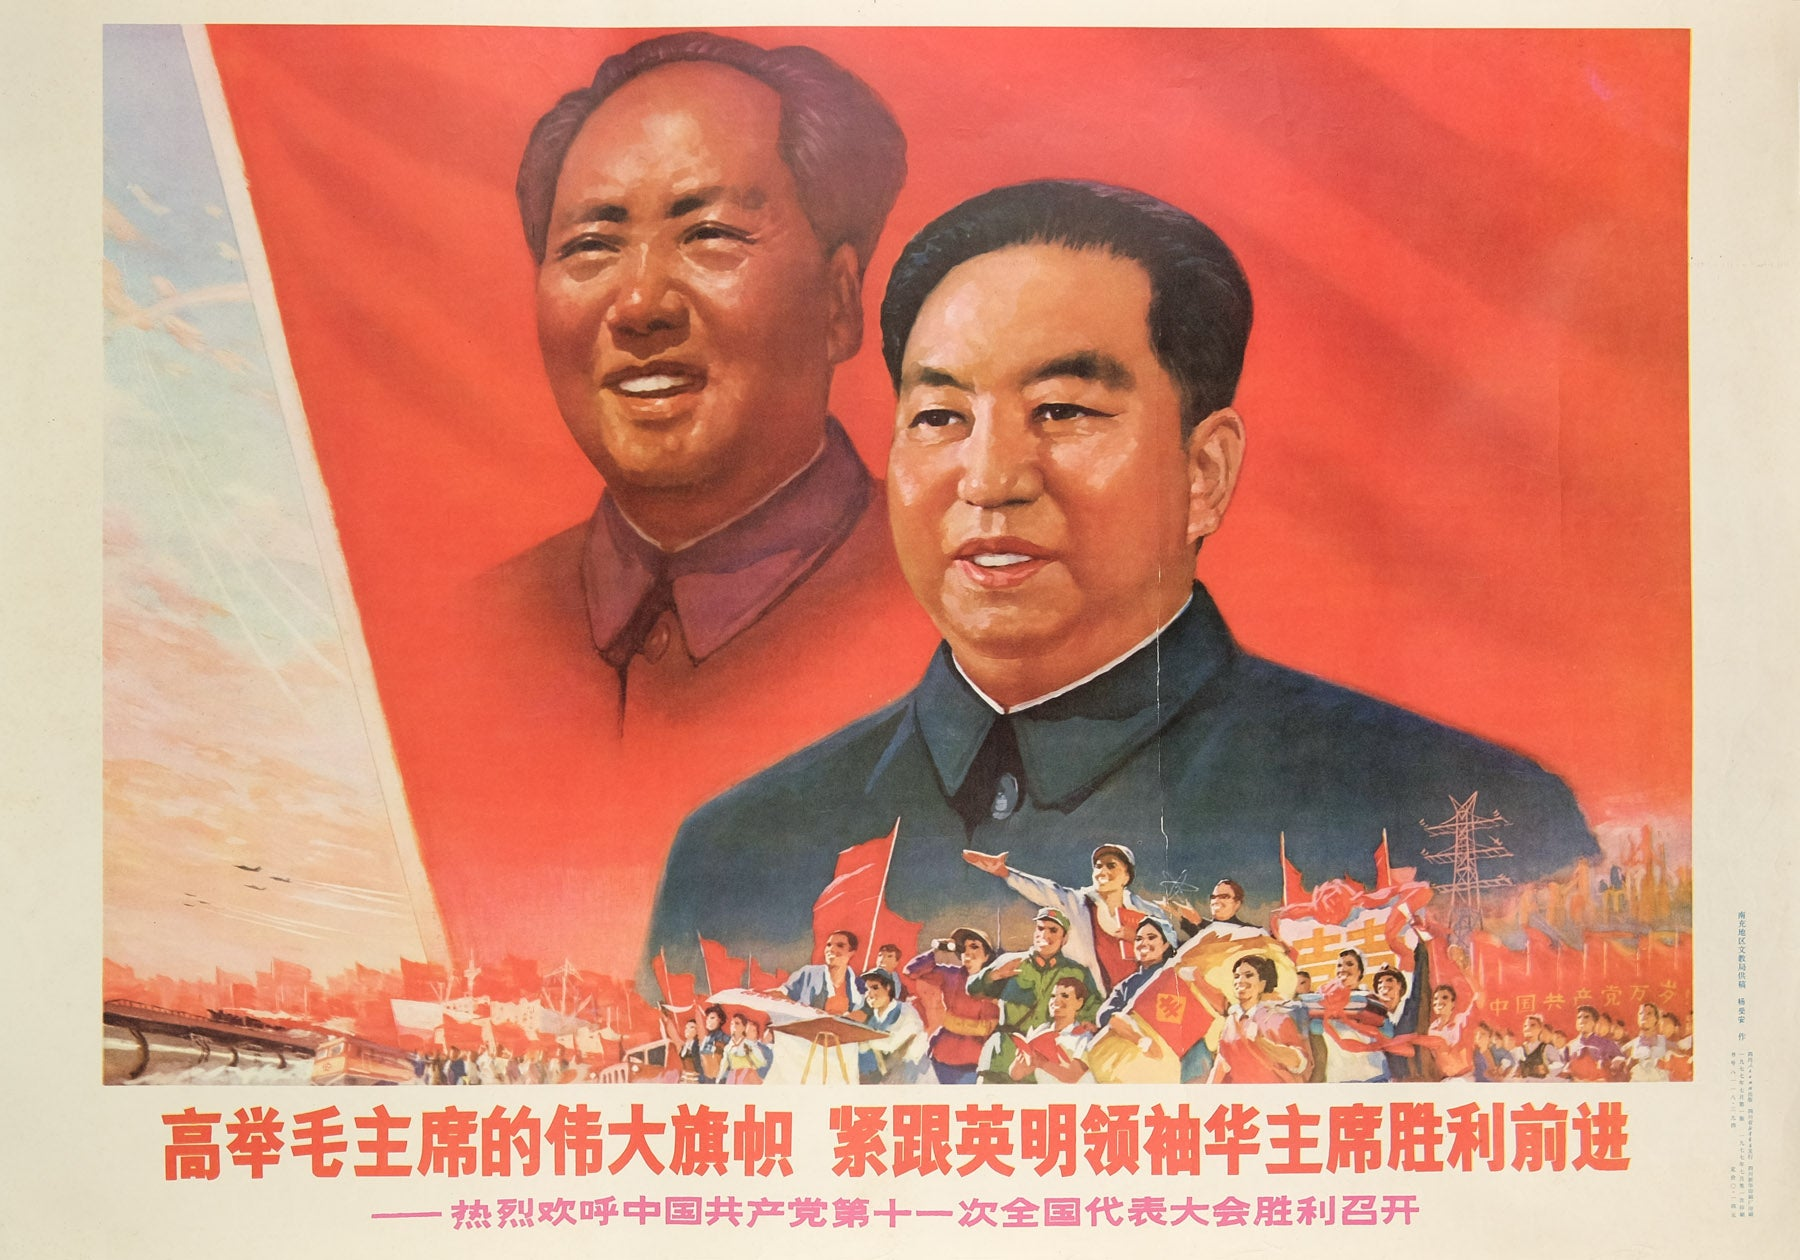 image of the original vintage 1977 Chinese communist propaganda poster by Yang Shou'an titled Hold high Chairman Mao's mighty red flag, follow closely the wise leadership of Chairman Hua and proceed onwards to victory published by Sichuan People's Publishing House